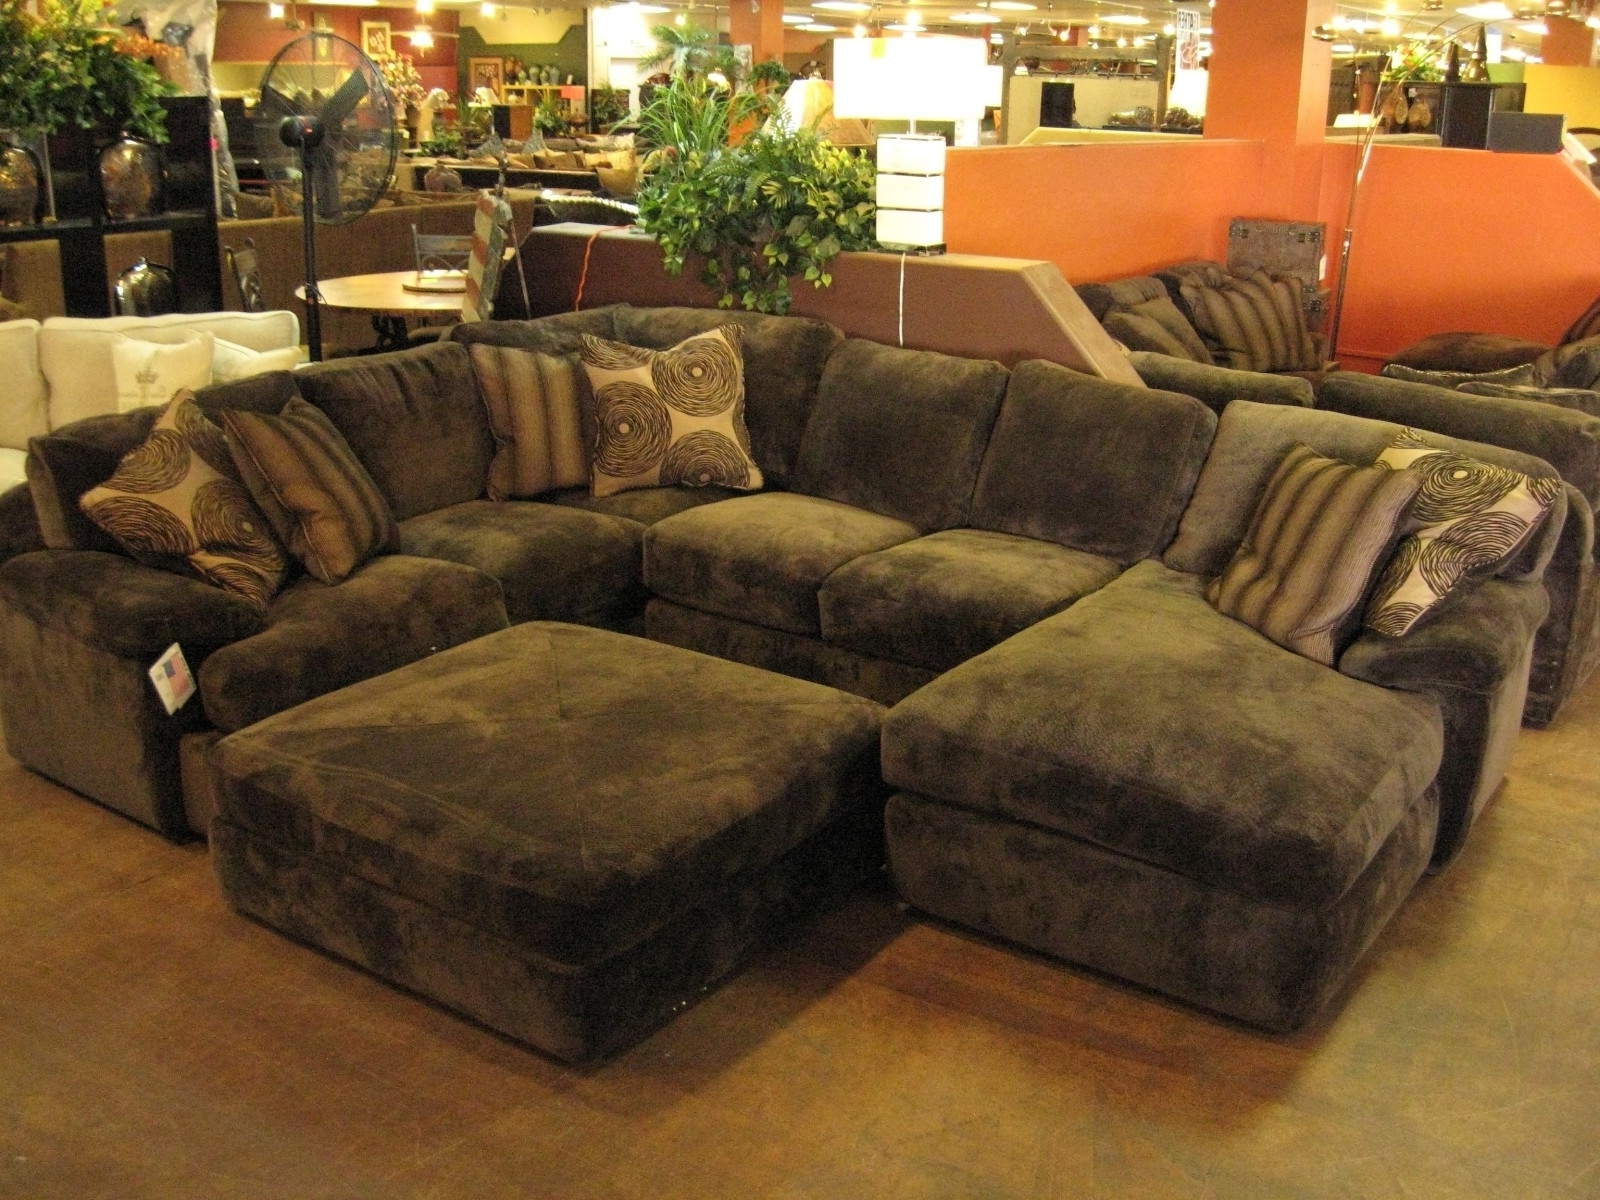 Sectional Sofa Design: Best Sectional Sofas With Ottoman Design Pertaining To Preferred Sofas With Ottoman (View 5 of 15)